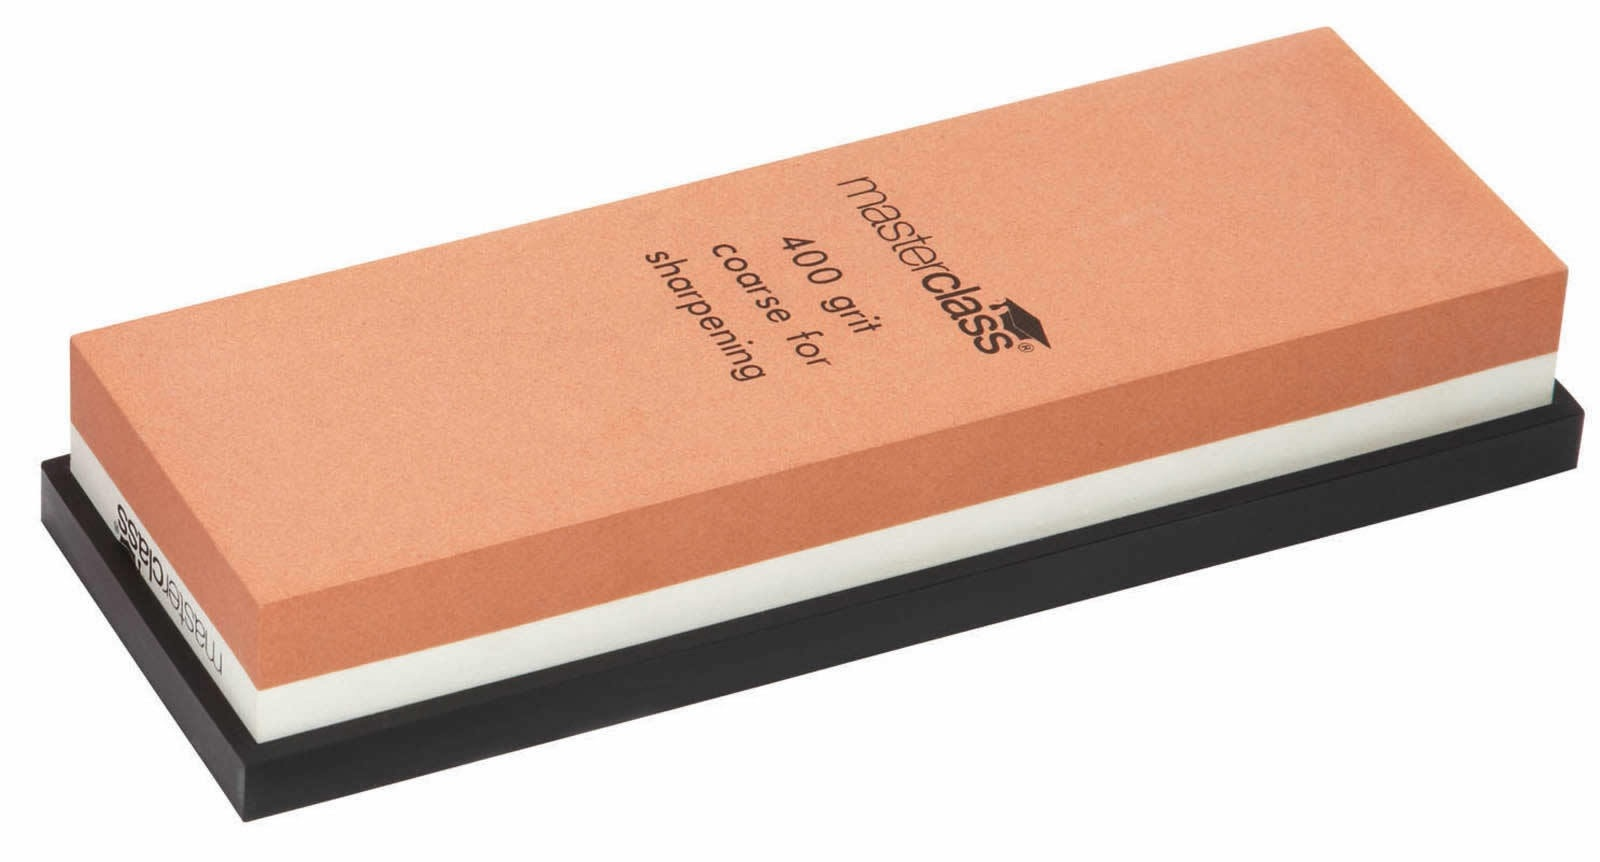 Kitchen Craft Sharpening Stone Review